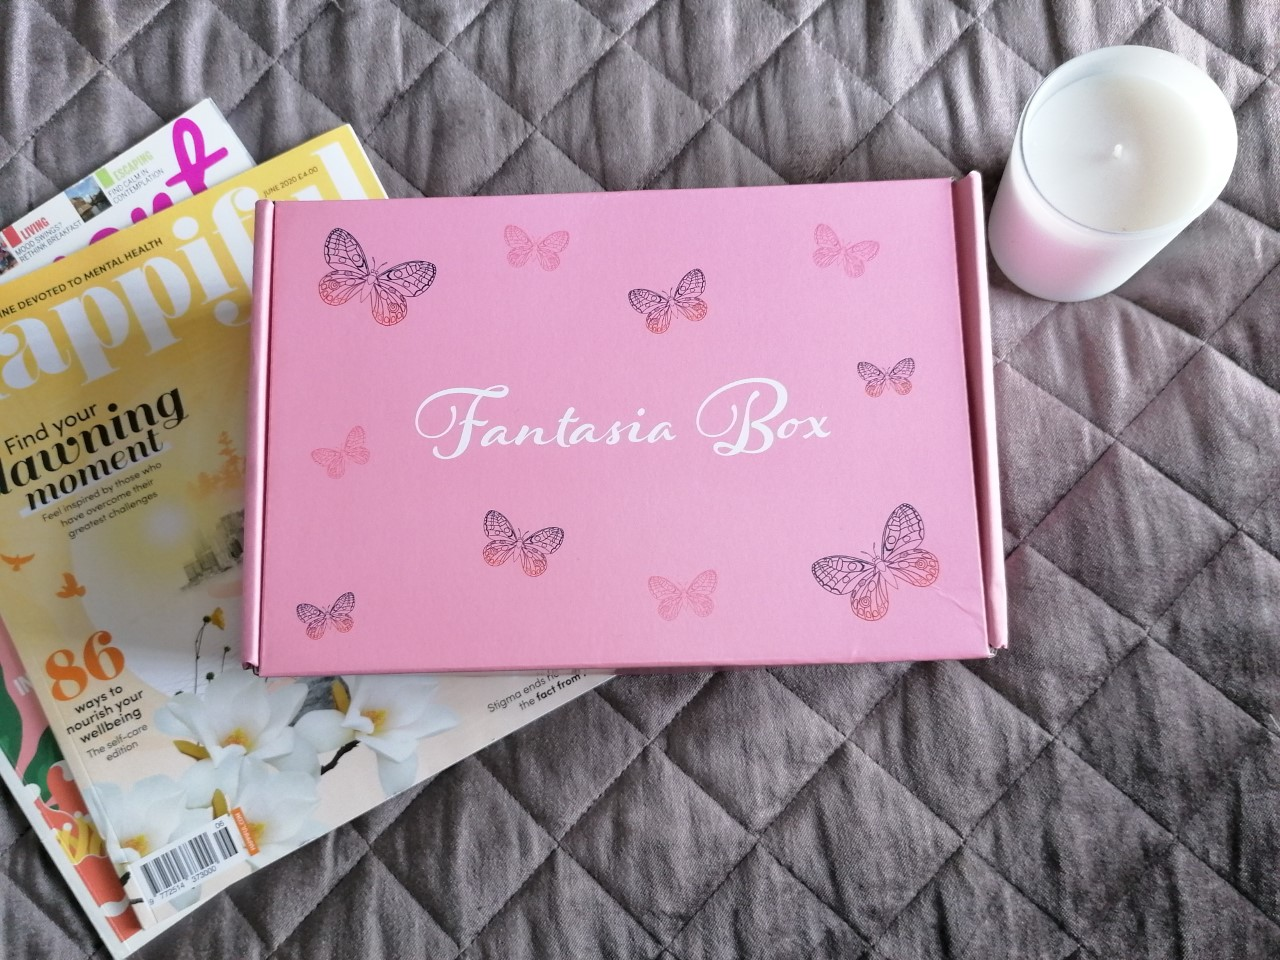 Fantasia Subscription Box